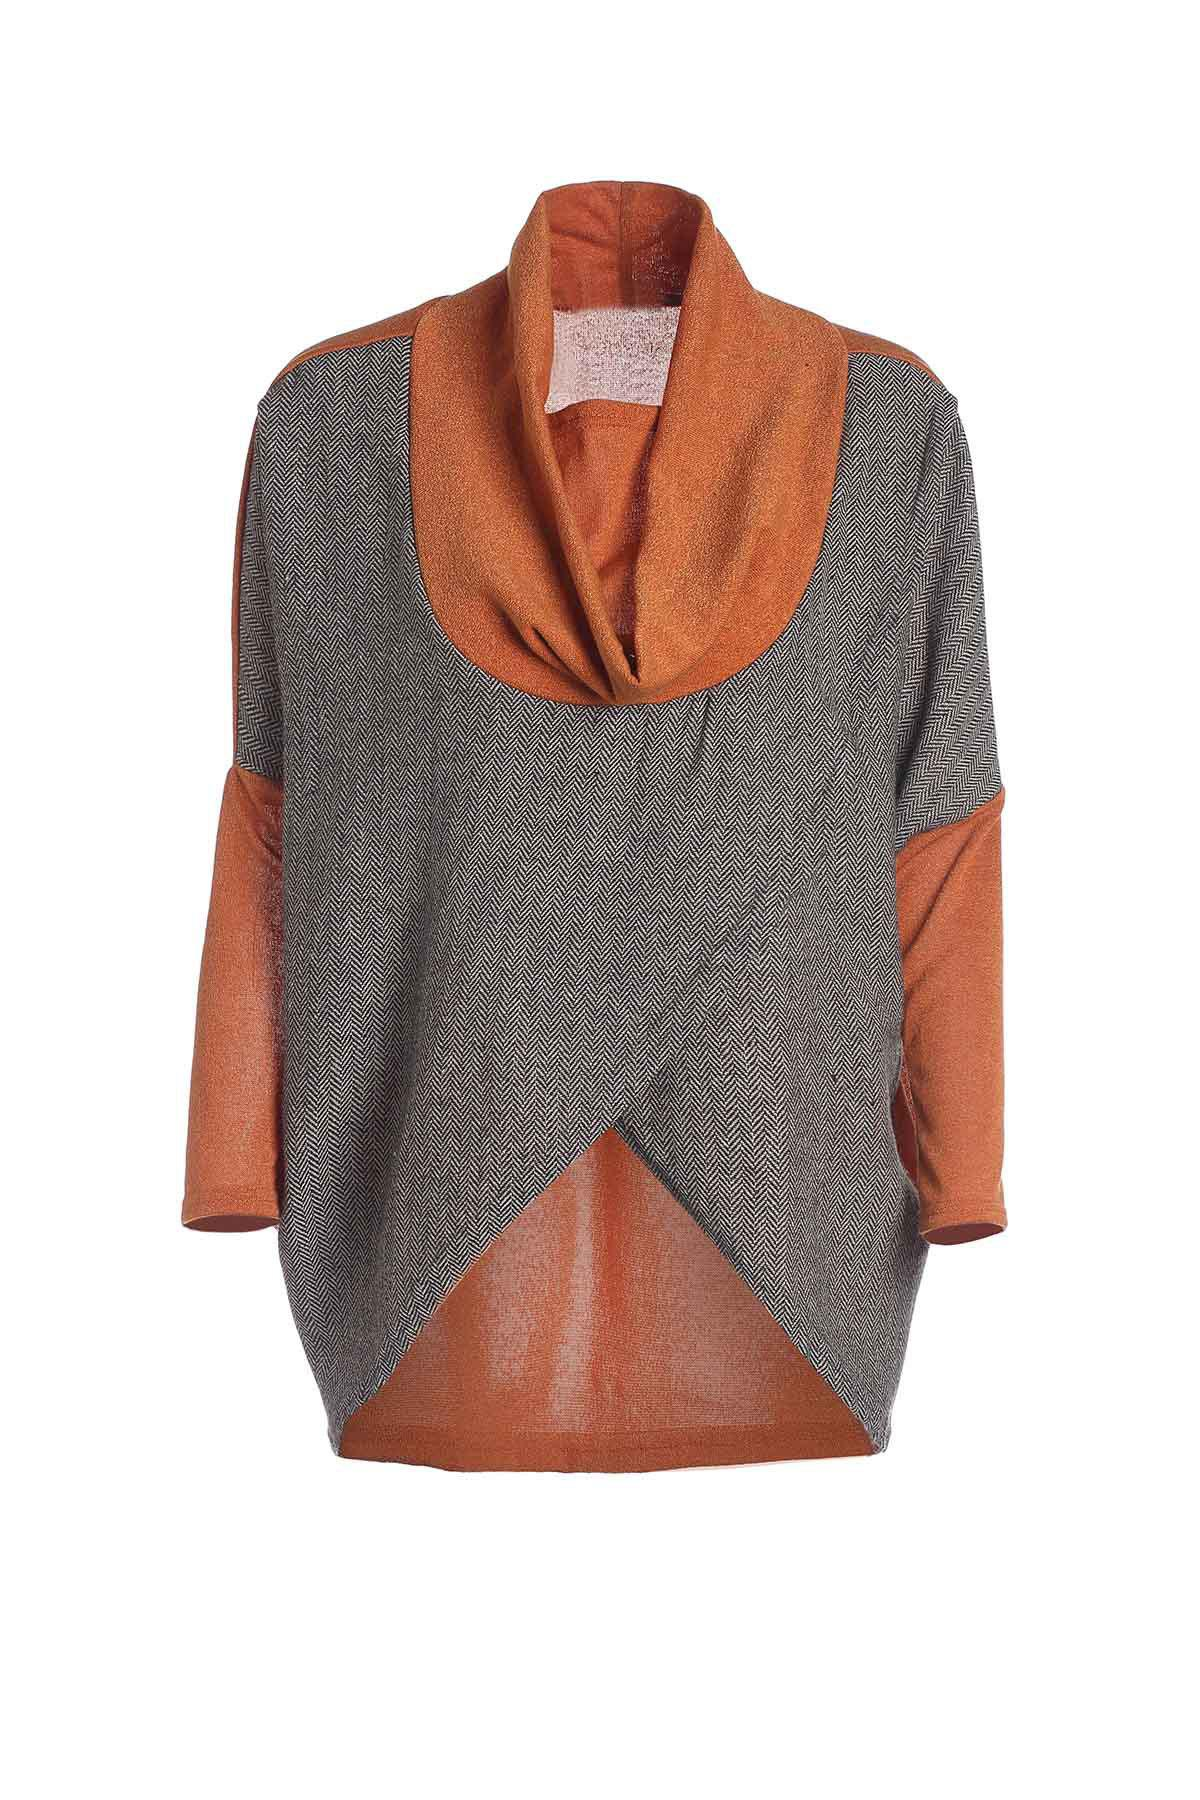 Stylish Cowl Neck Long Sleeves Color Match Batwing Irregular Design Cotton Blend Women's Sweater